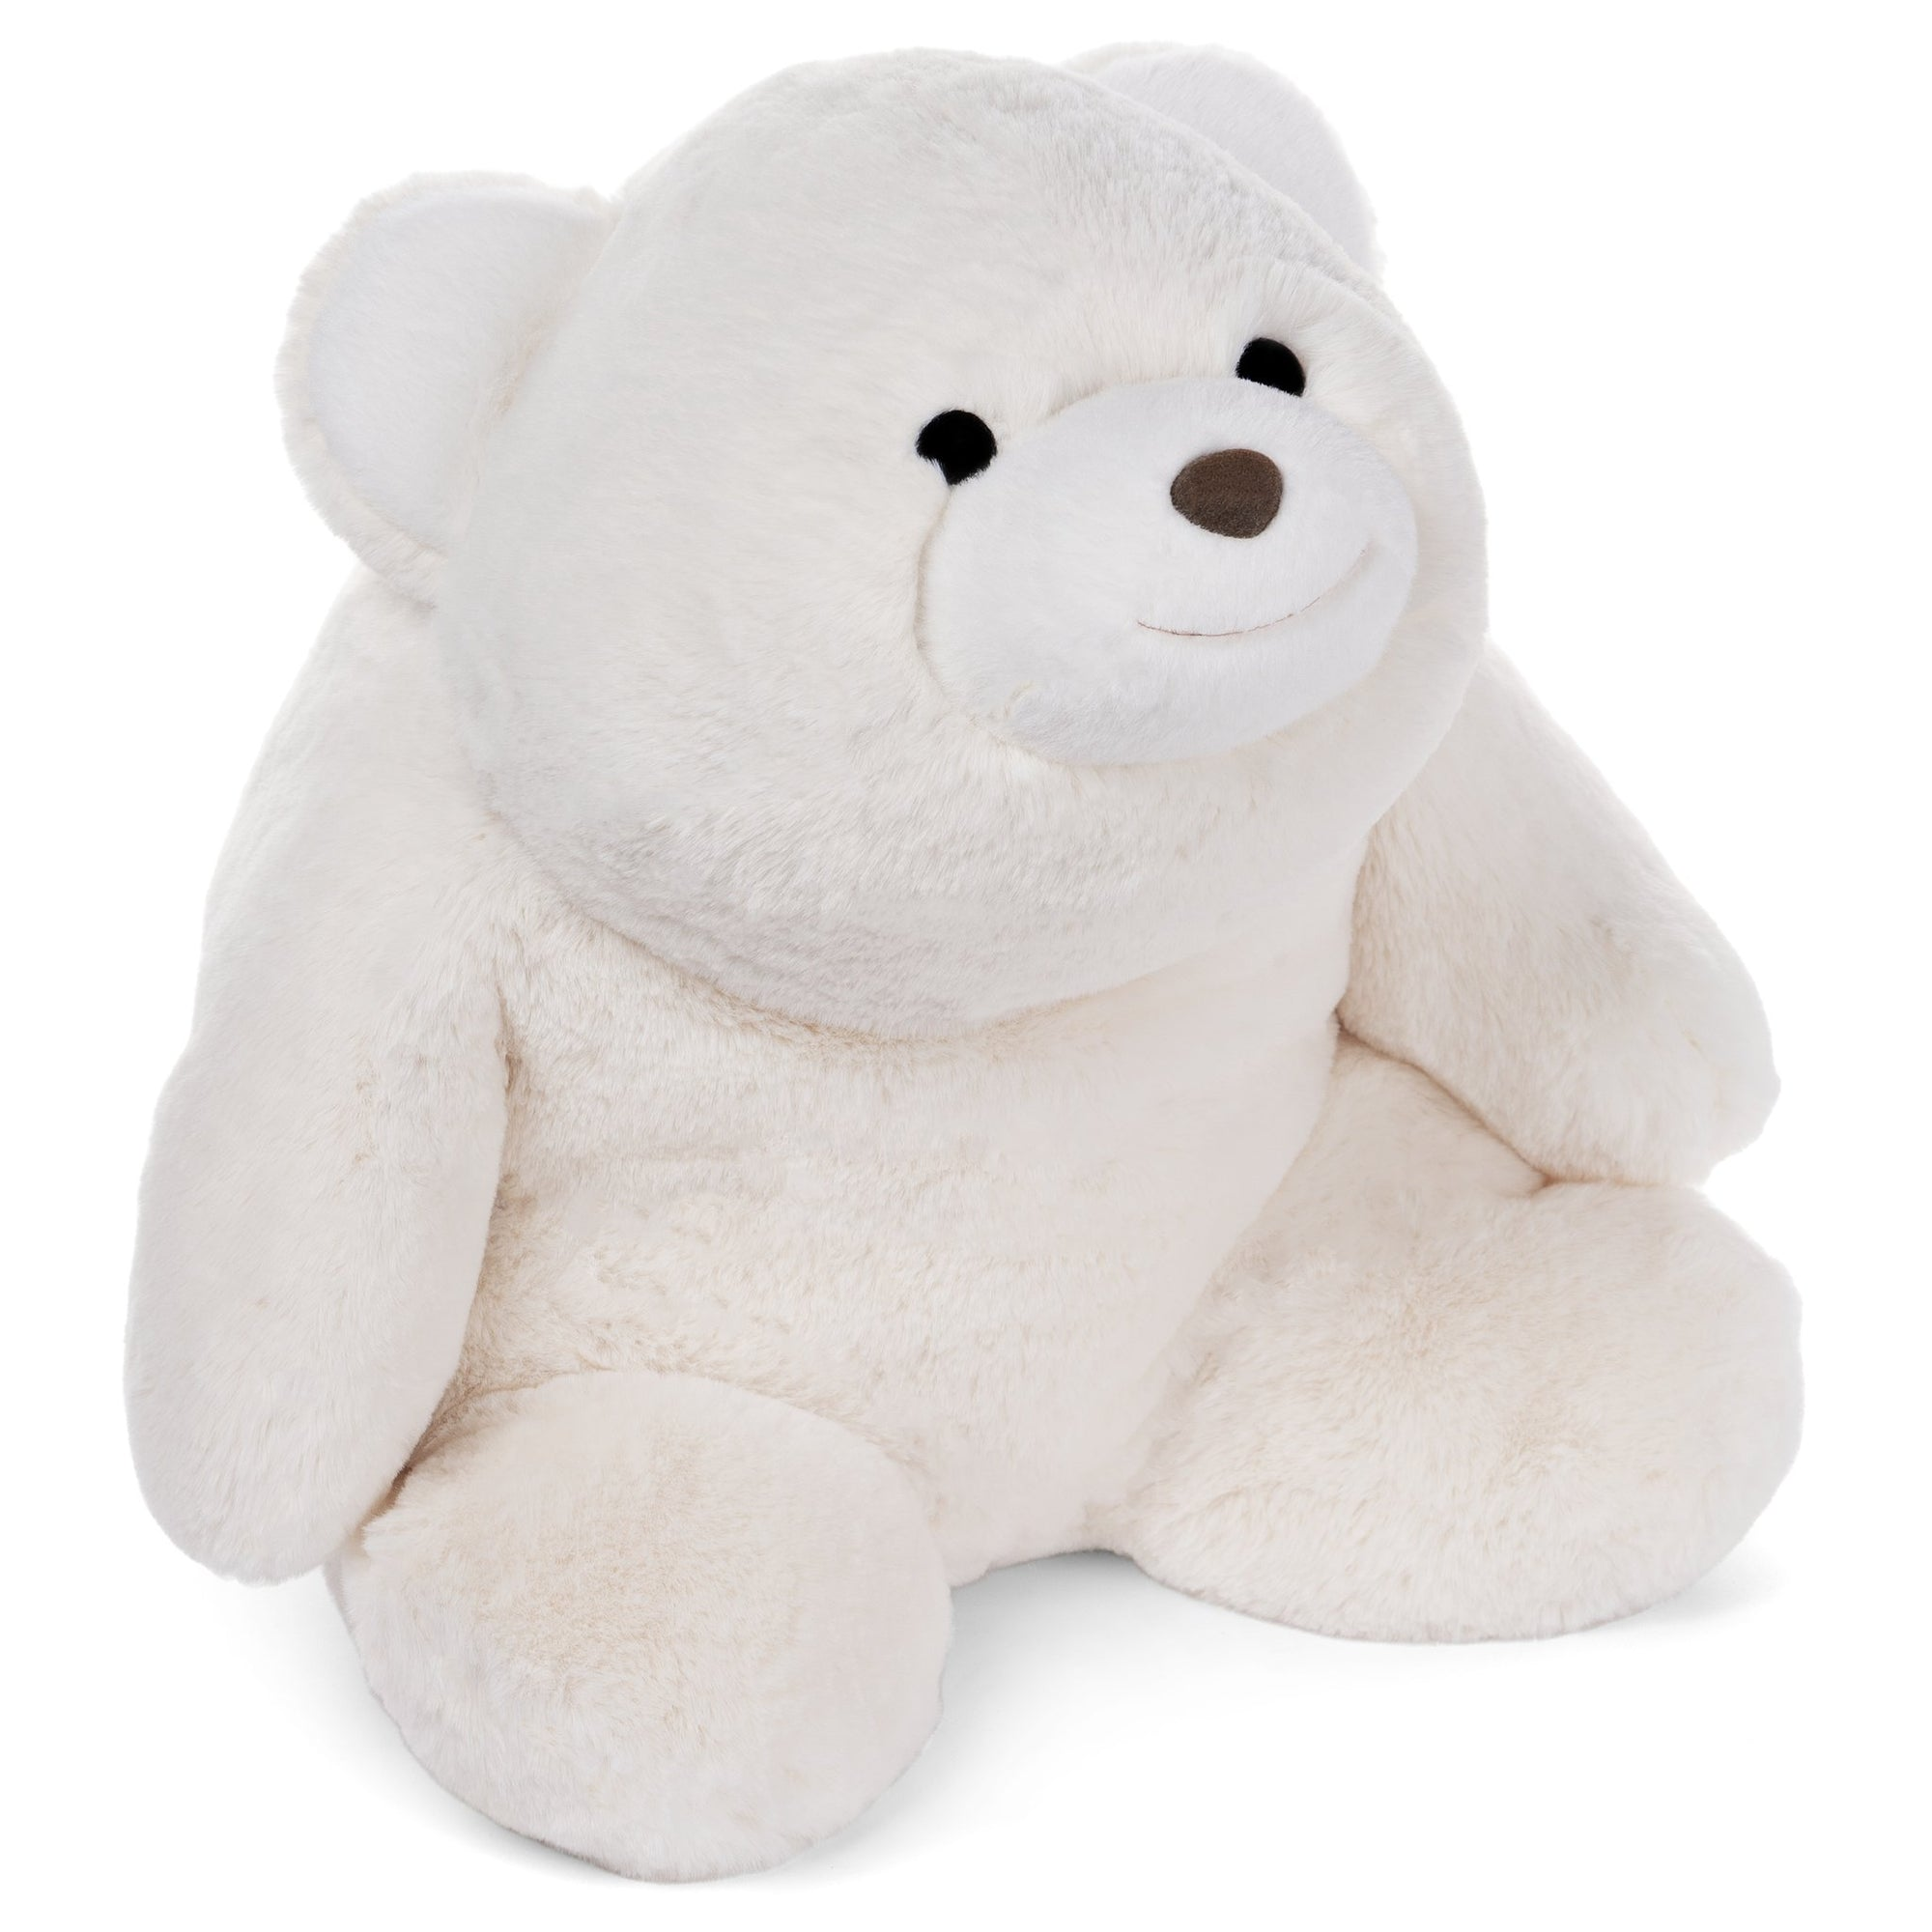 Gund - Snuffles White Stuffed Animal 18""